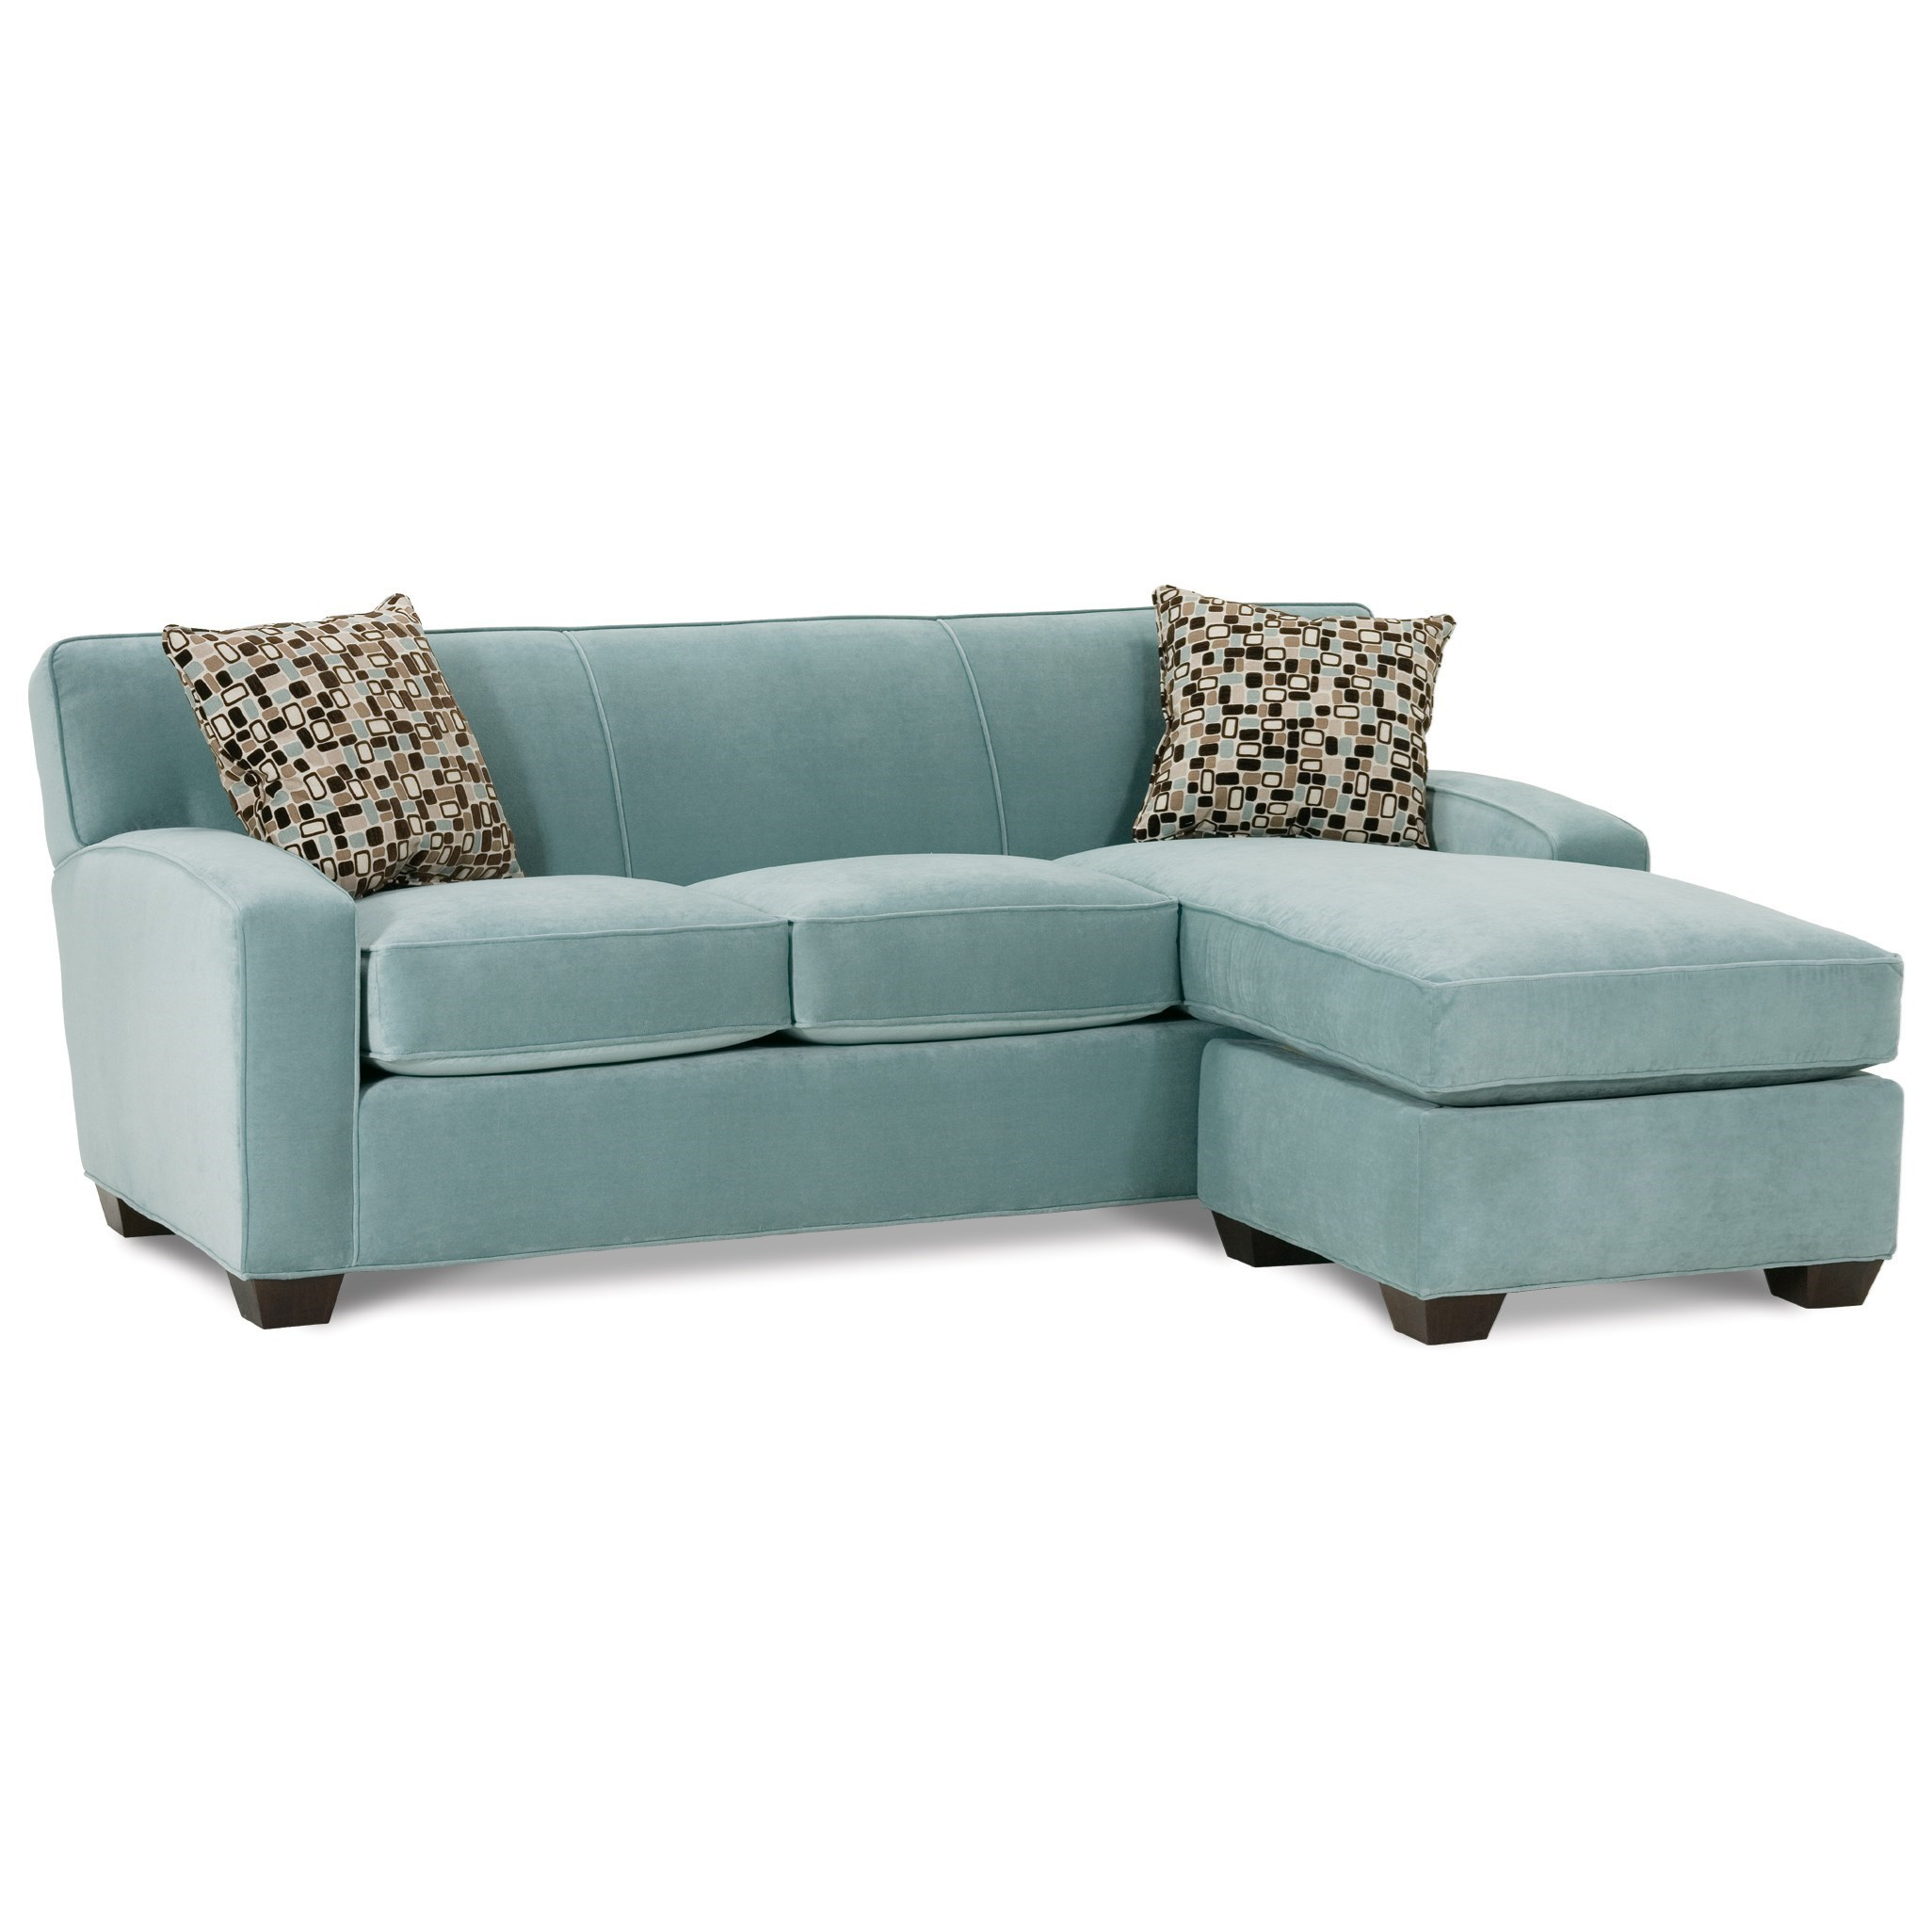 Rowe Horizon Transitional Sofa And Chaise With Wood Legs Belfort Furniture Sectional Sofas